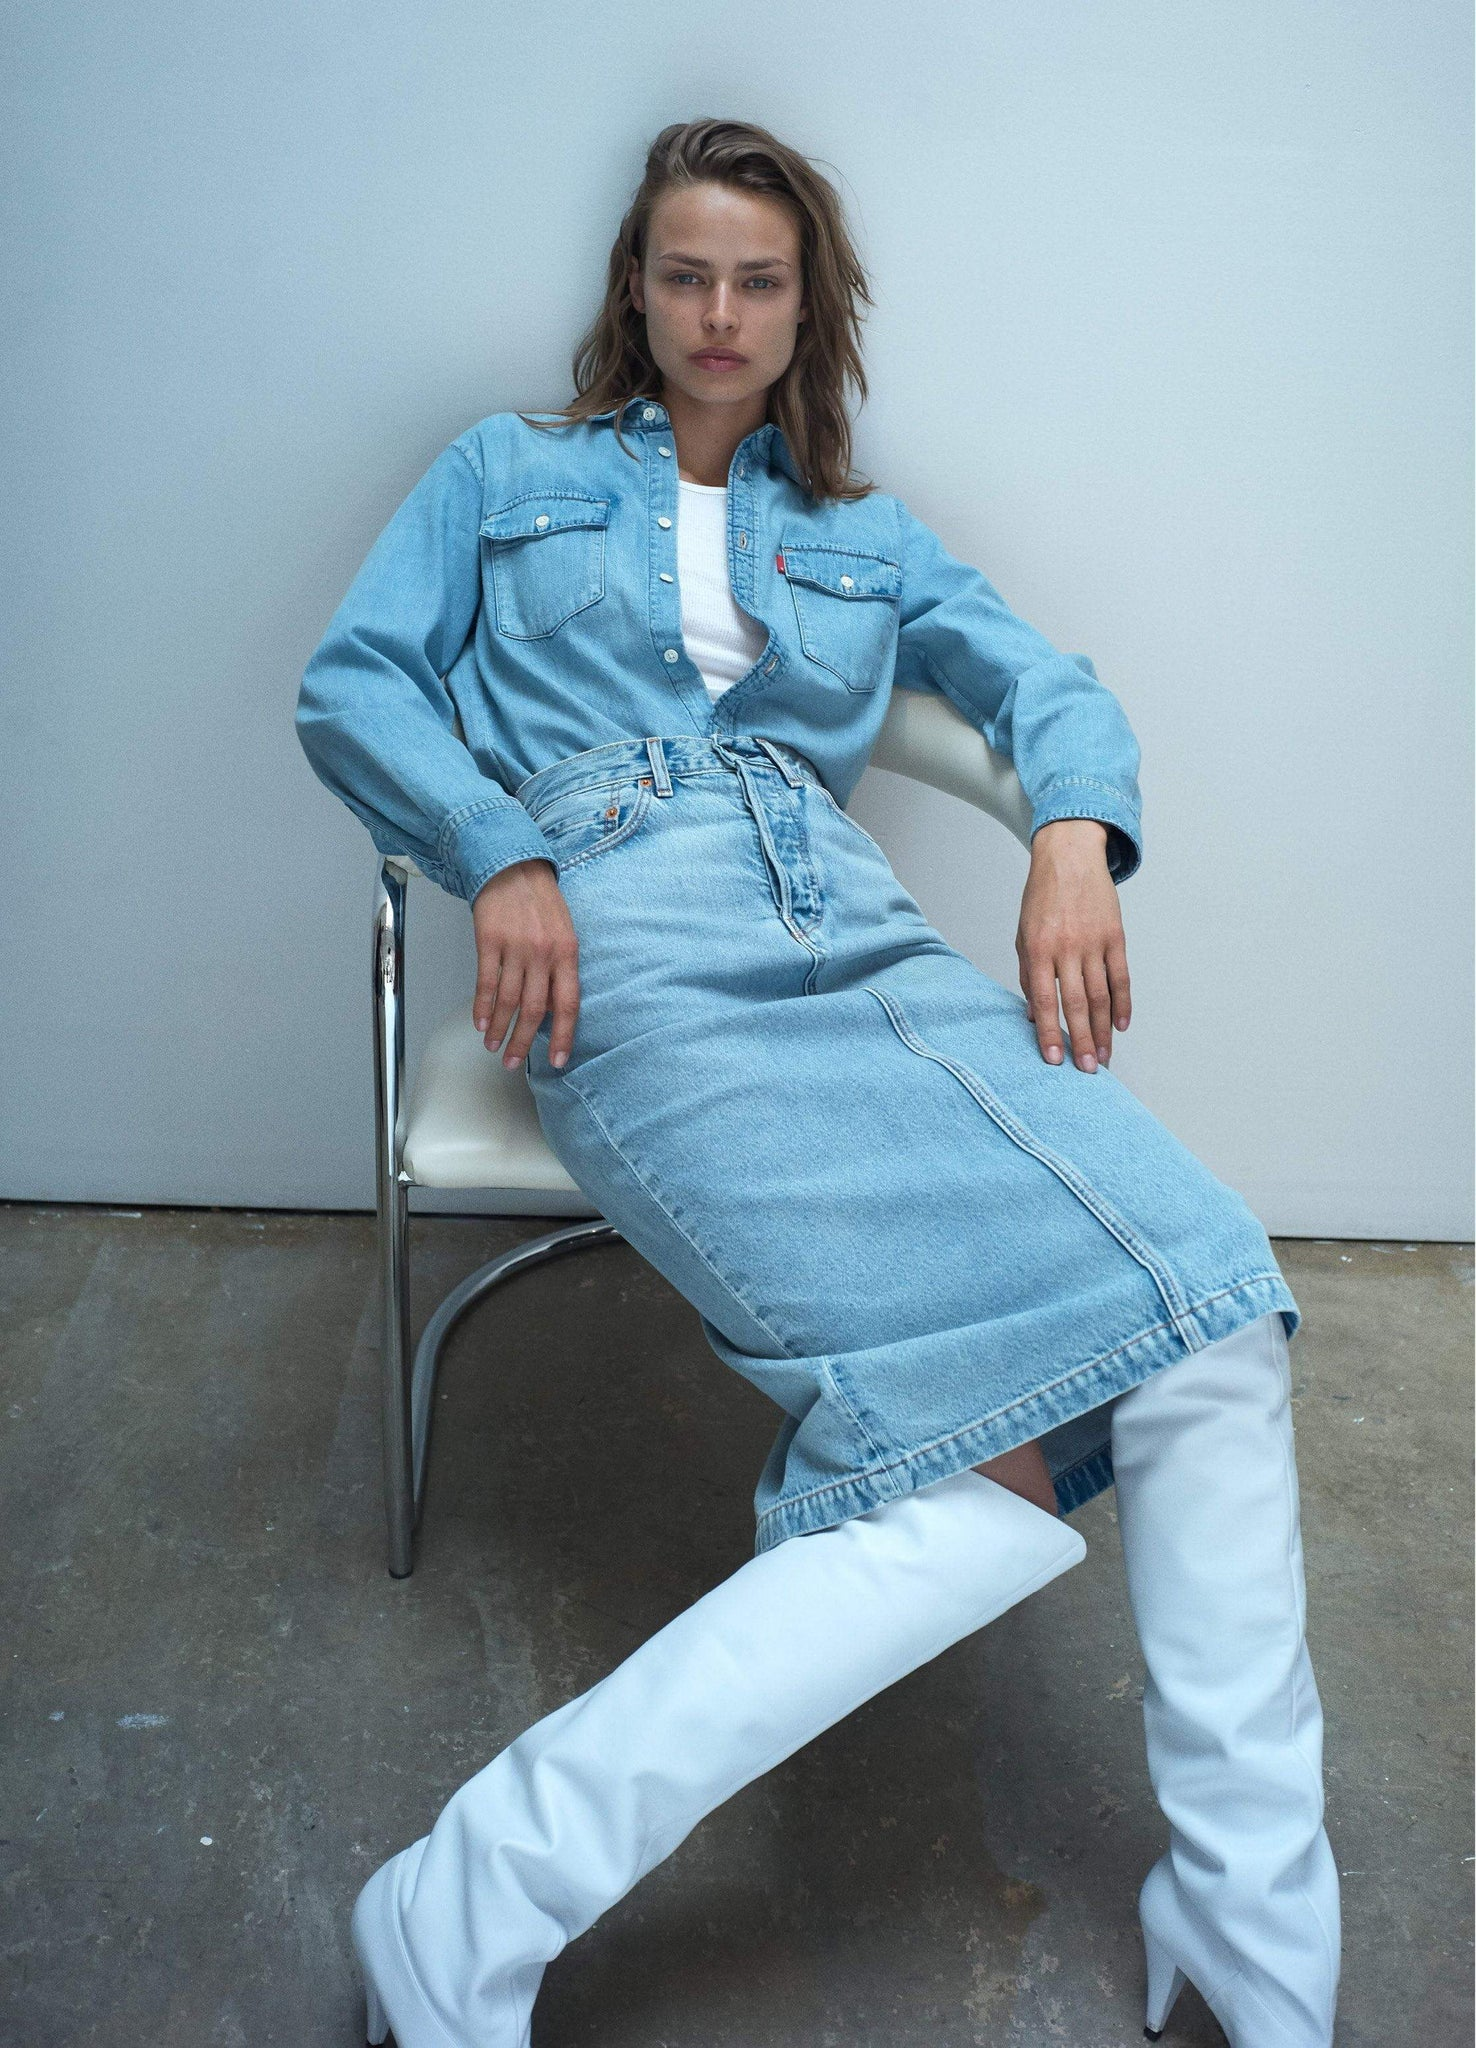 WARDROBE.NYC wardrobe No Color / One Size WOMAN 04 DENIM 8 PIECE